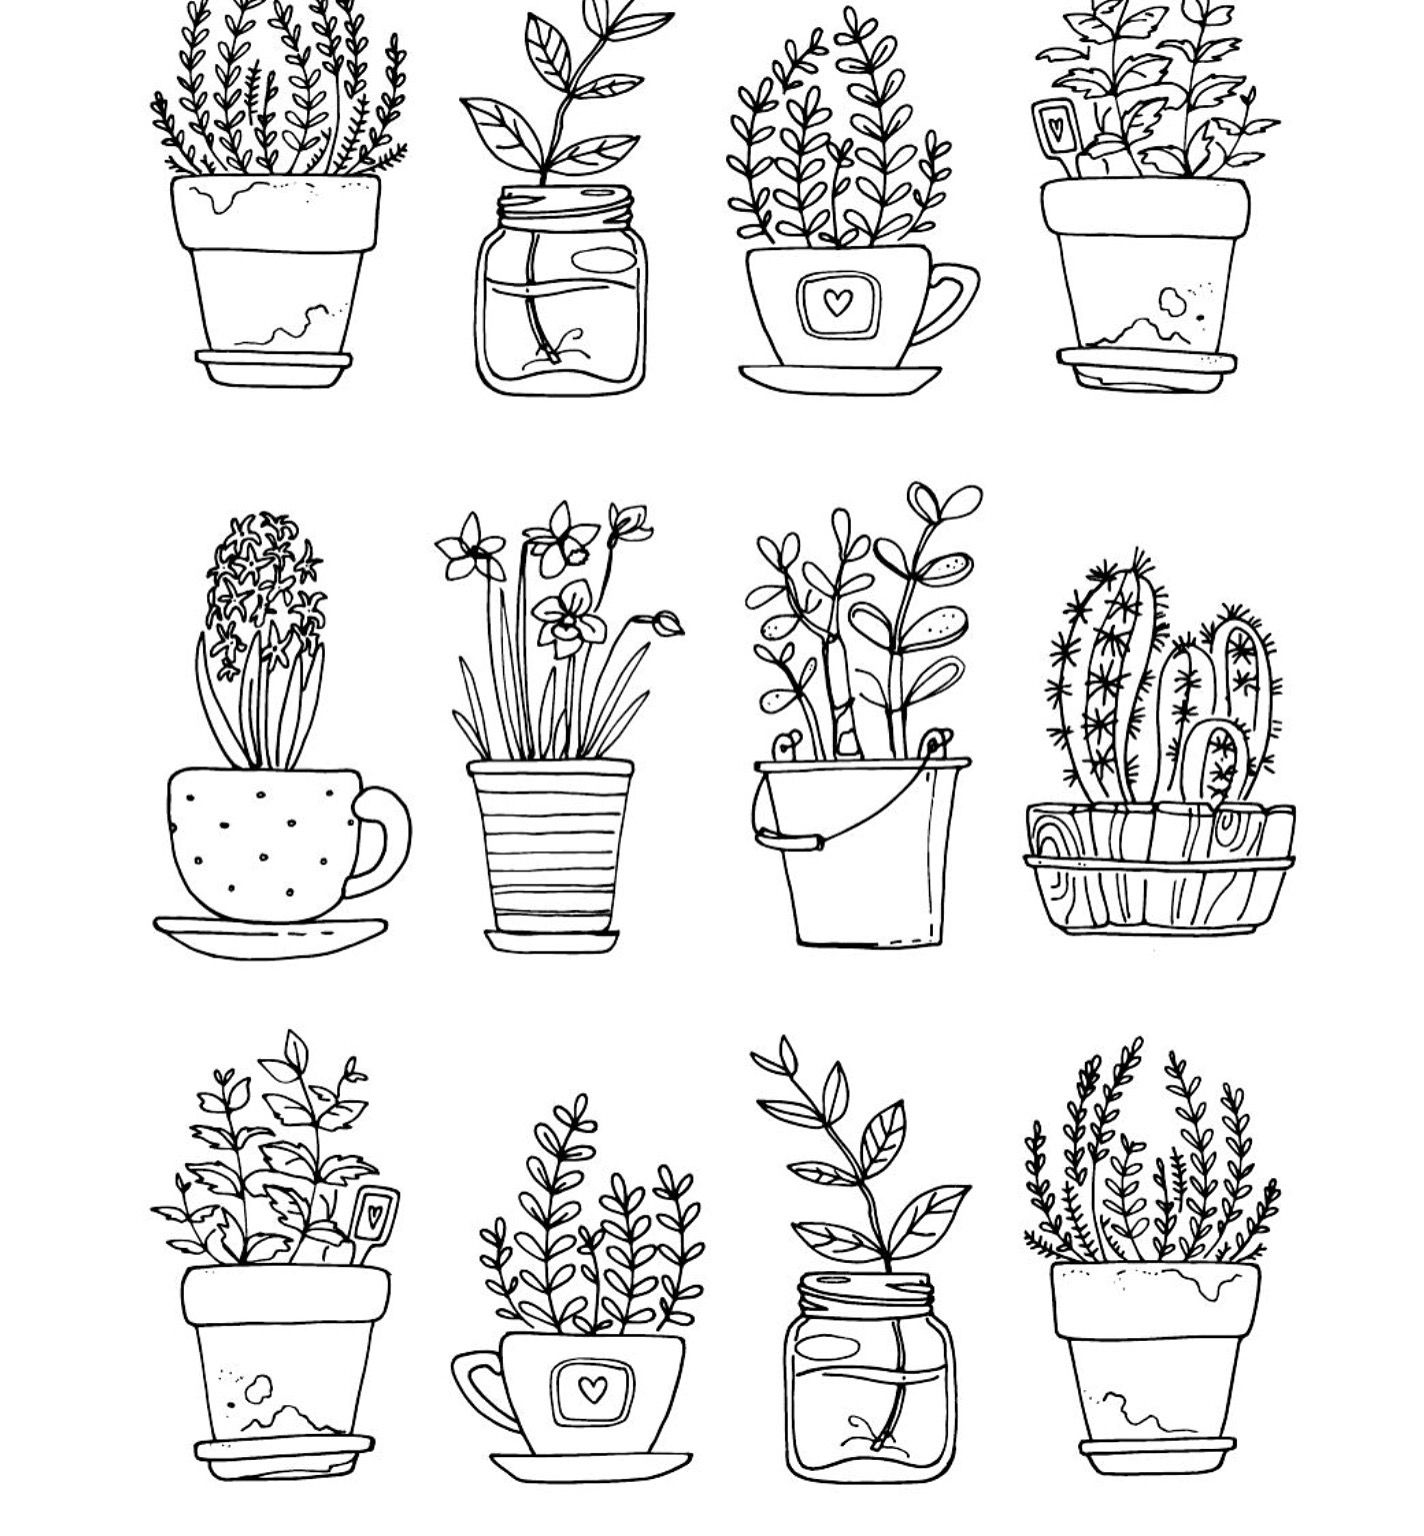 Potted Plants With Images Plant Doodle Botanical Line Drawing